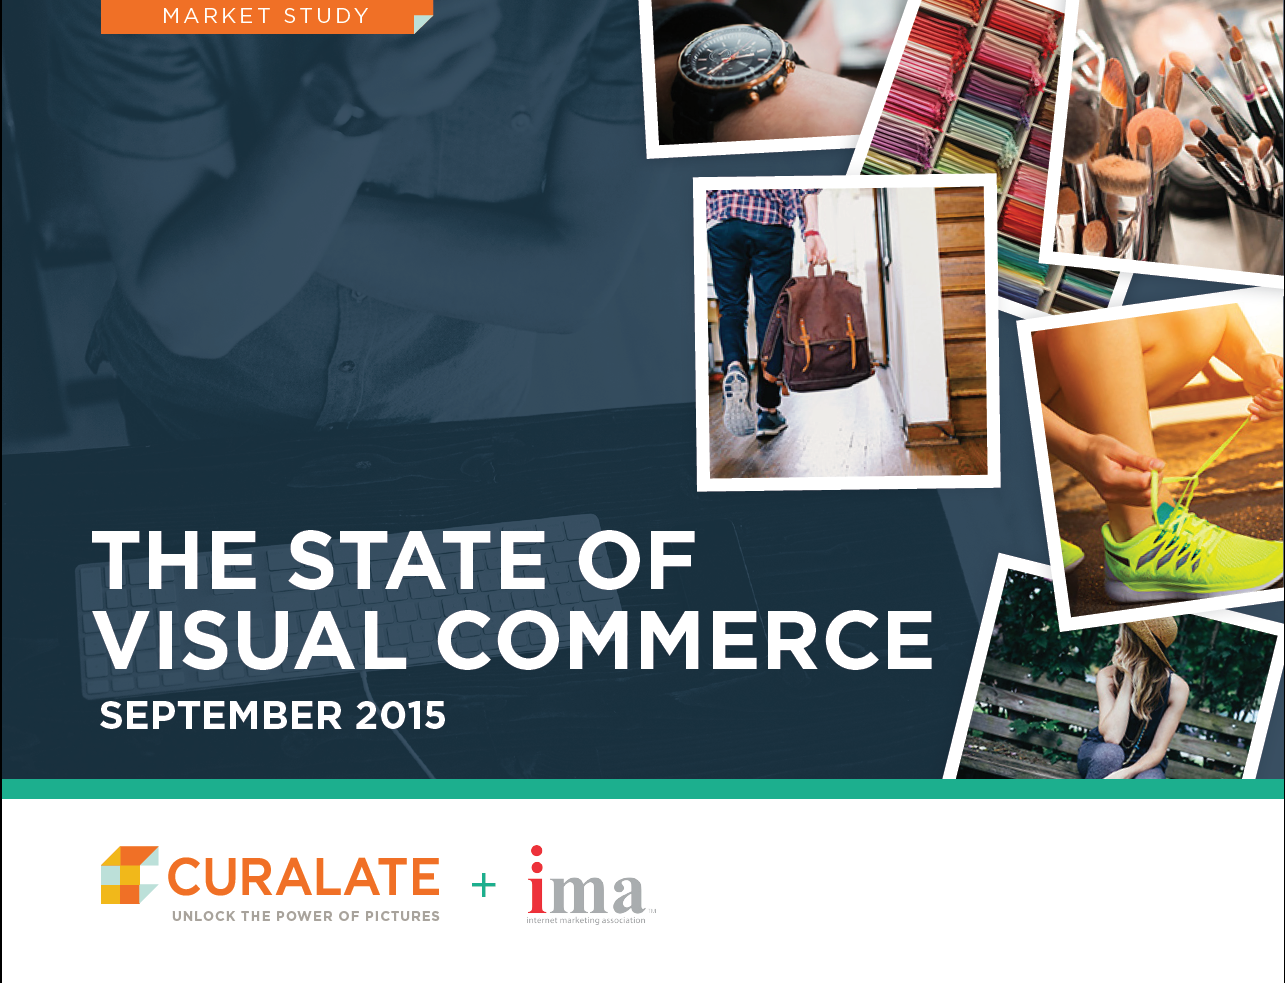 The State of Visual Commerce Synthesized for San Antonio